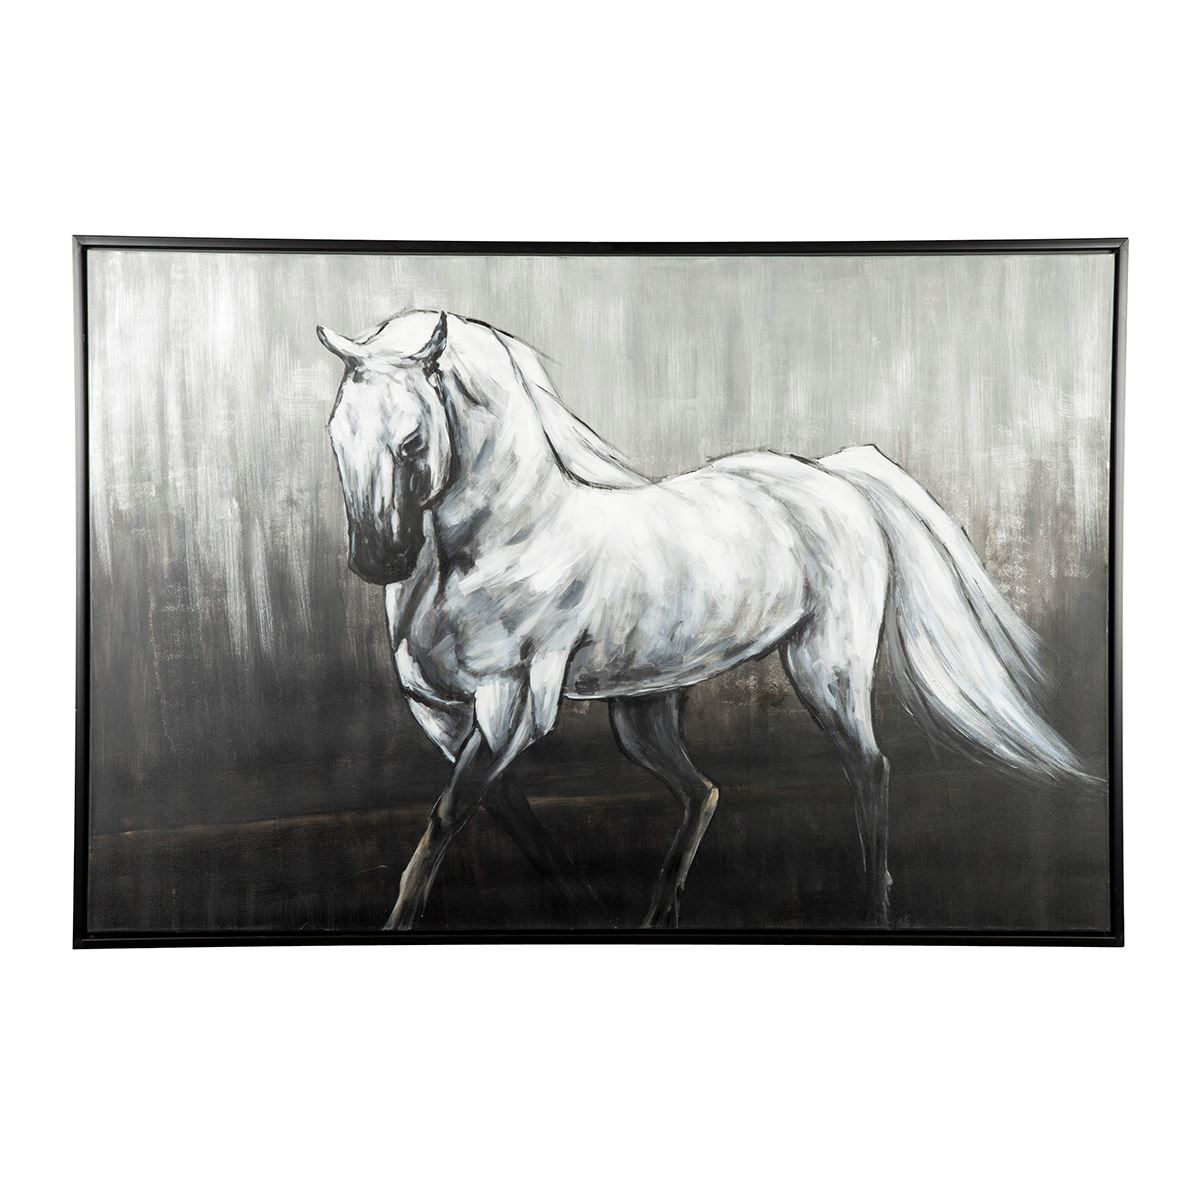 Victor Black White Horse Wall Canvas A8000210 Lifestyle Furniture By Babette S The Villages